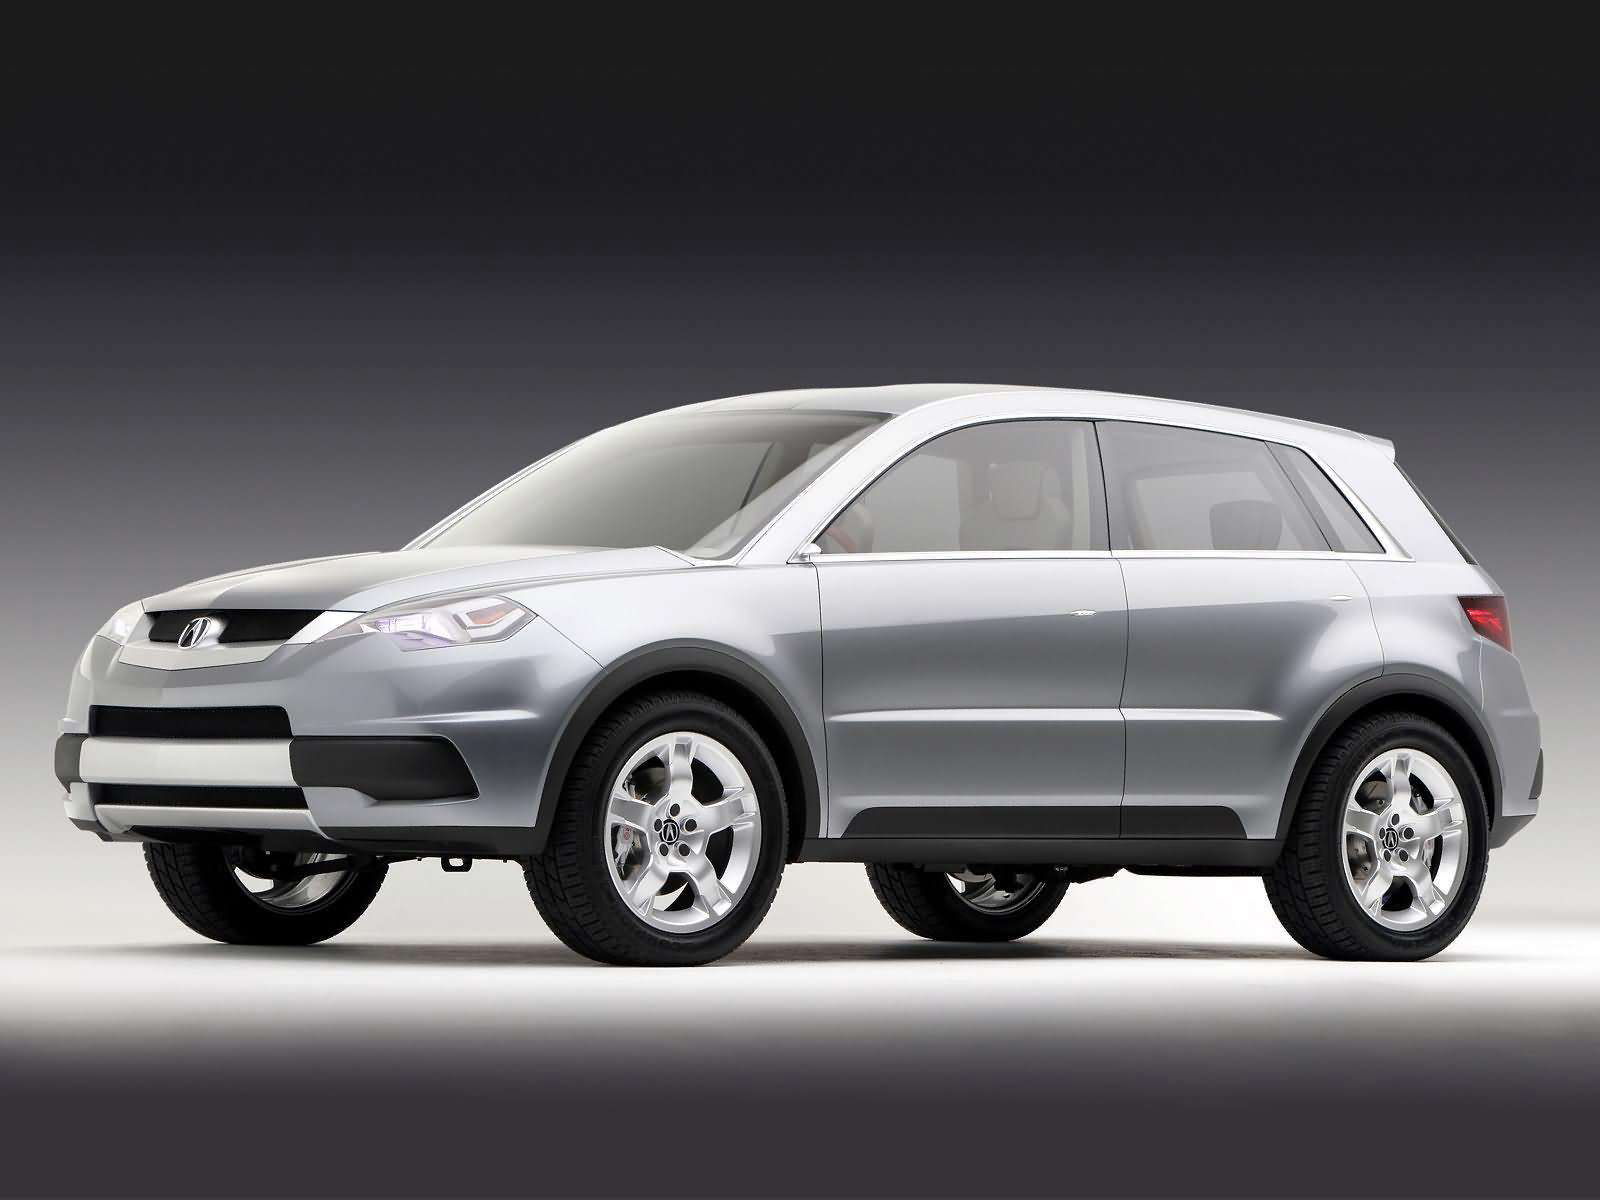 2005 Acura RDX Concept photo - 3